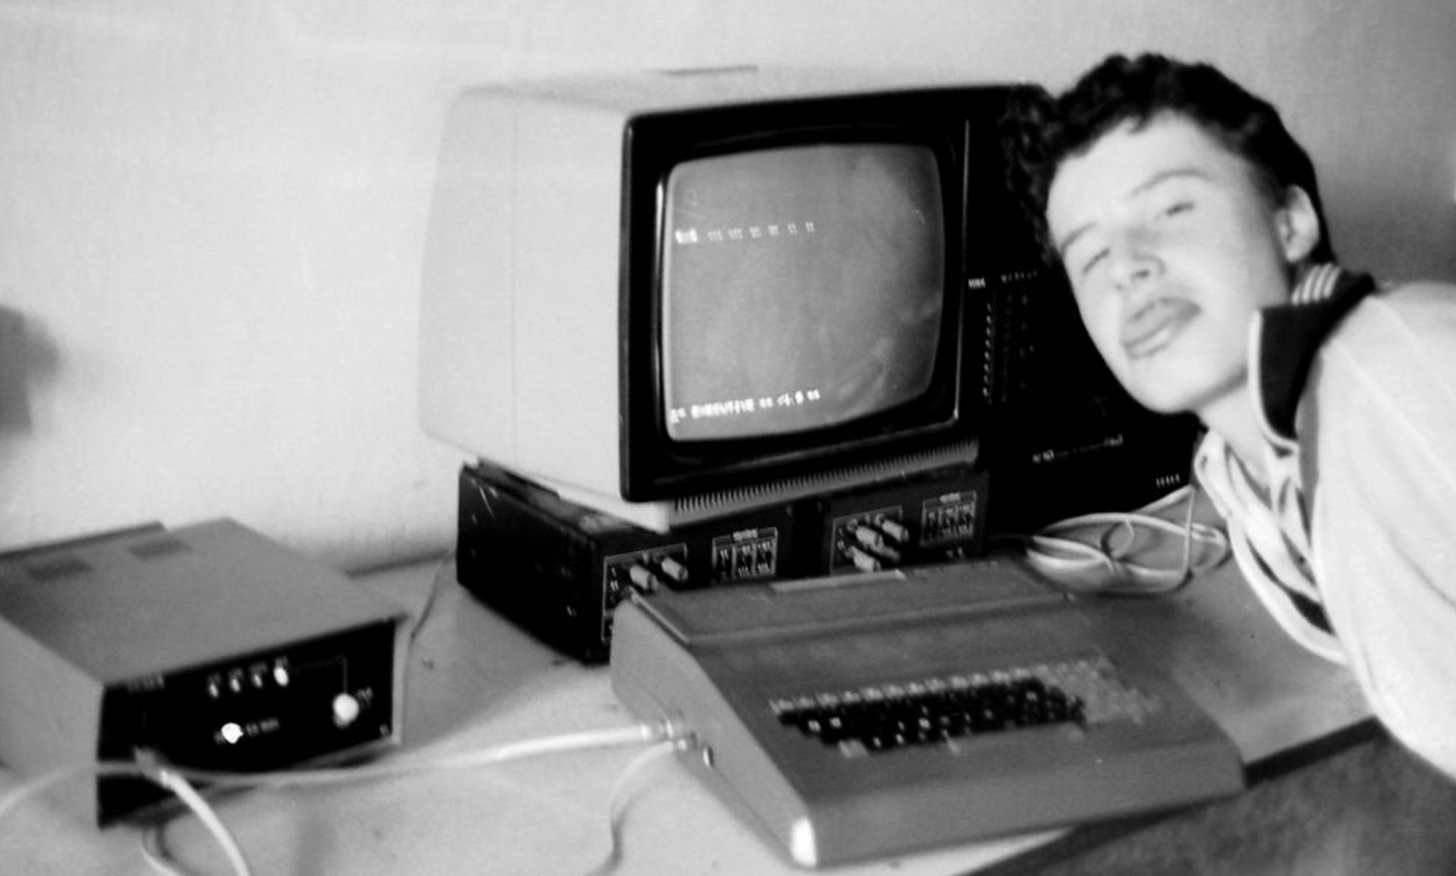 A teenager sticks his tongue out at the camera, sitting in front of a clunky 1980s computer with CRT screen.